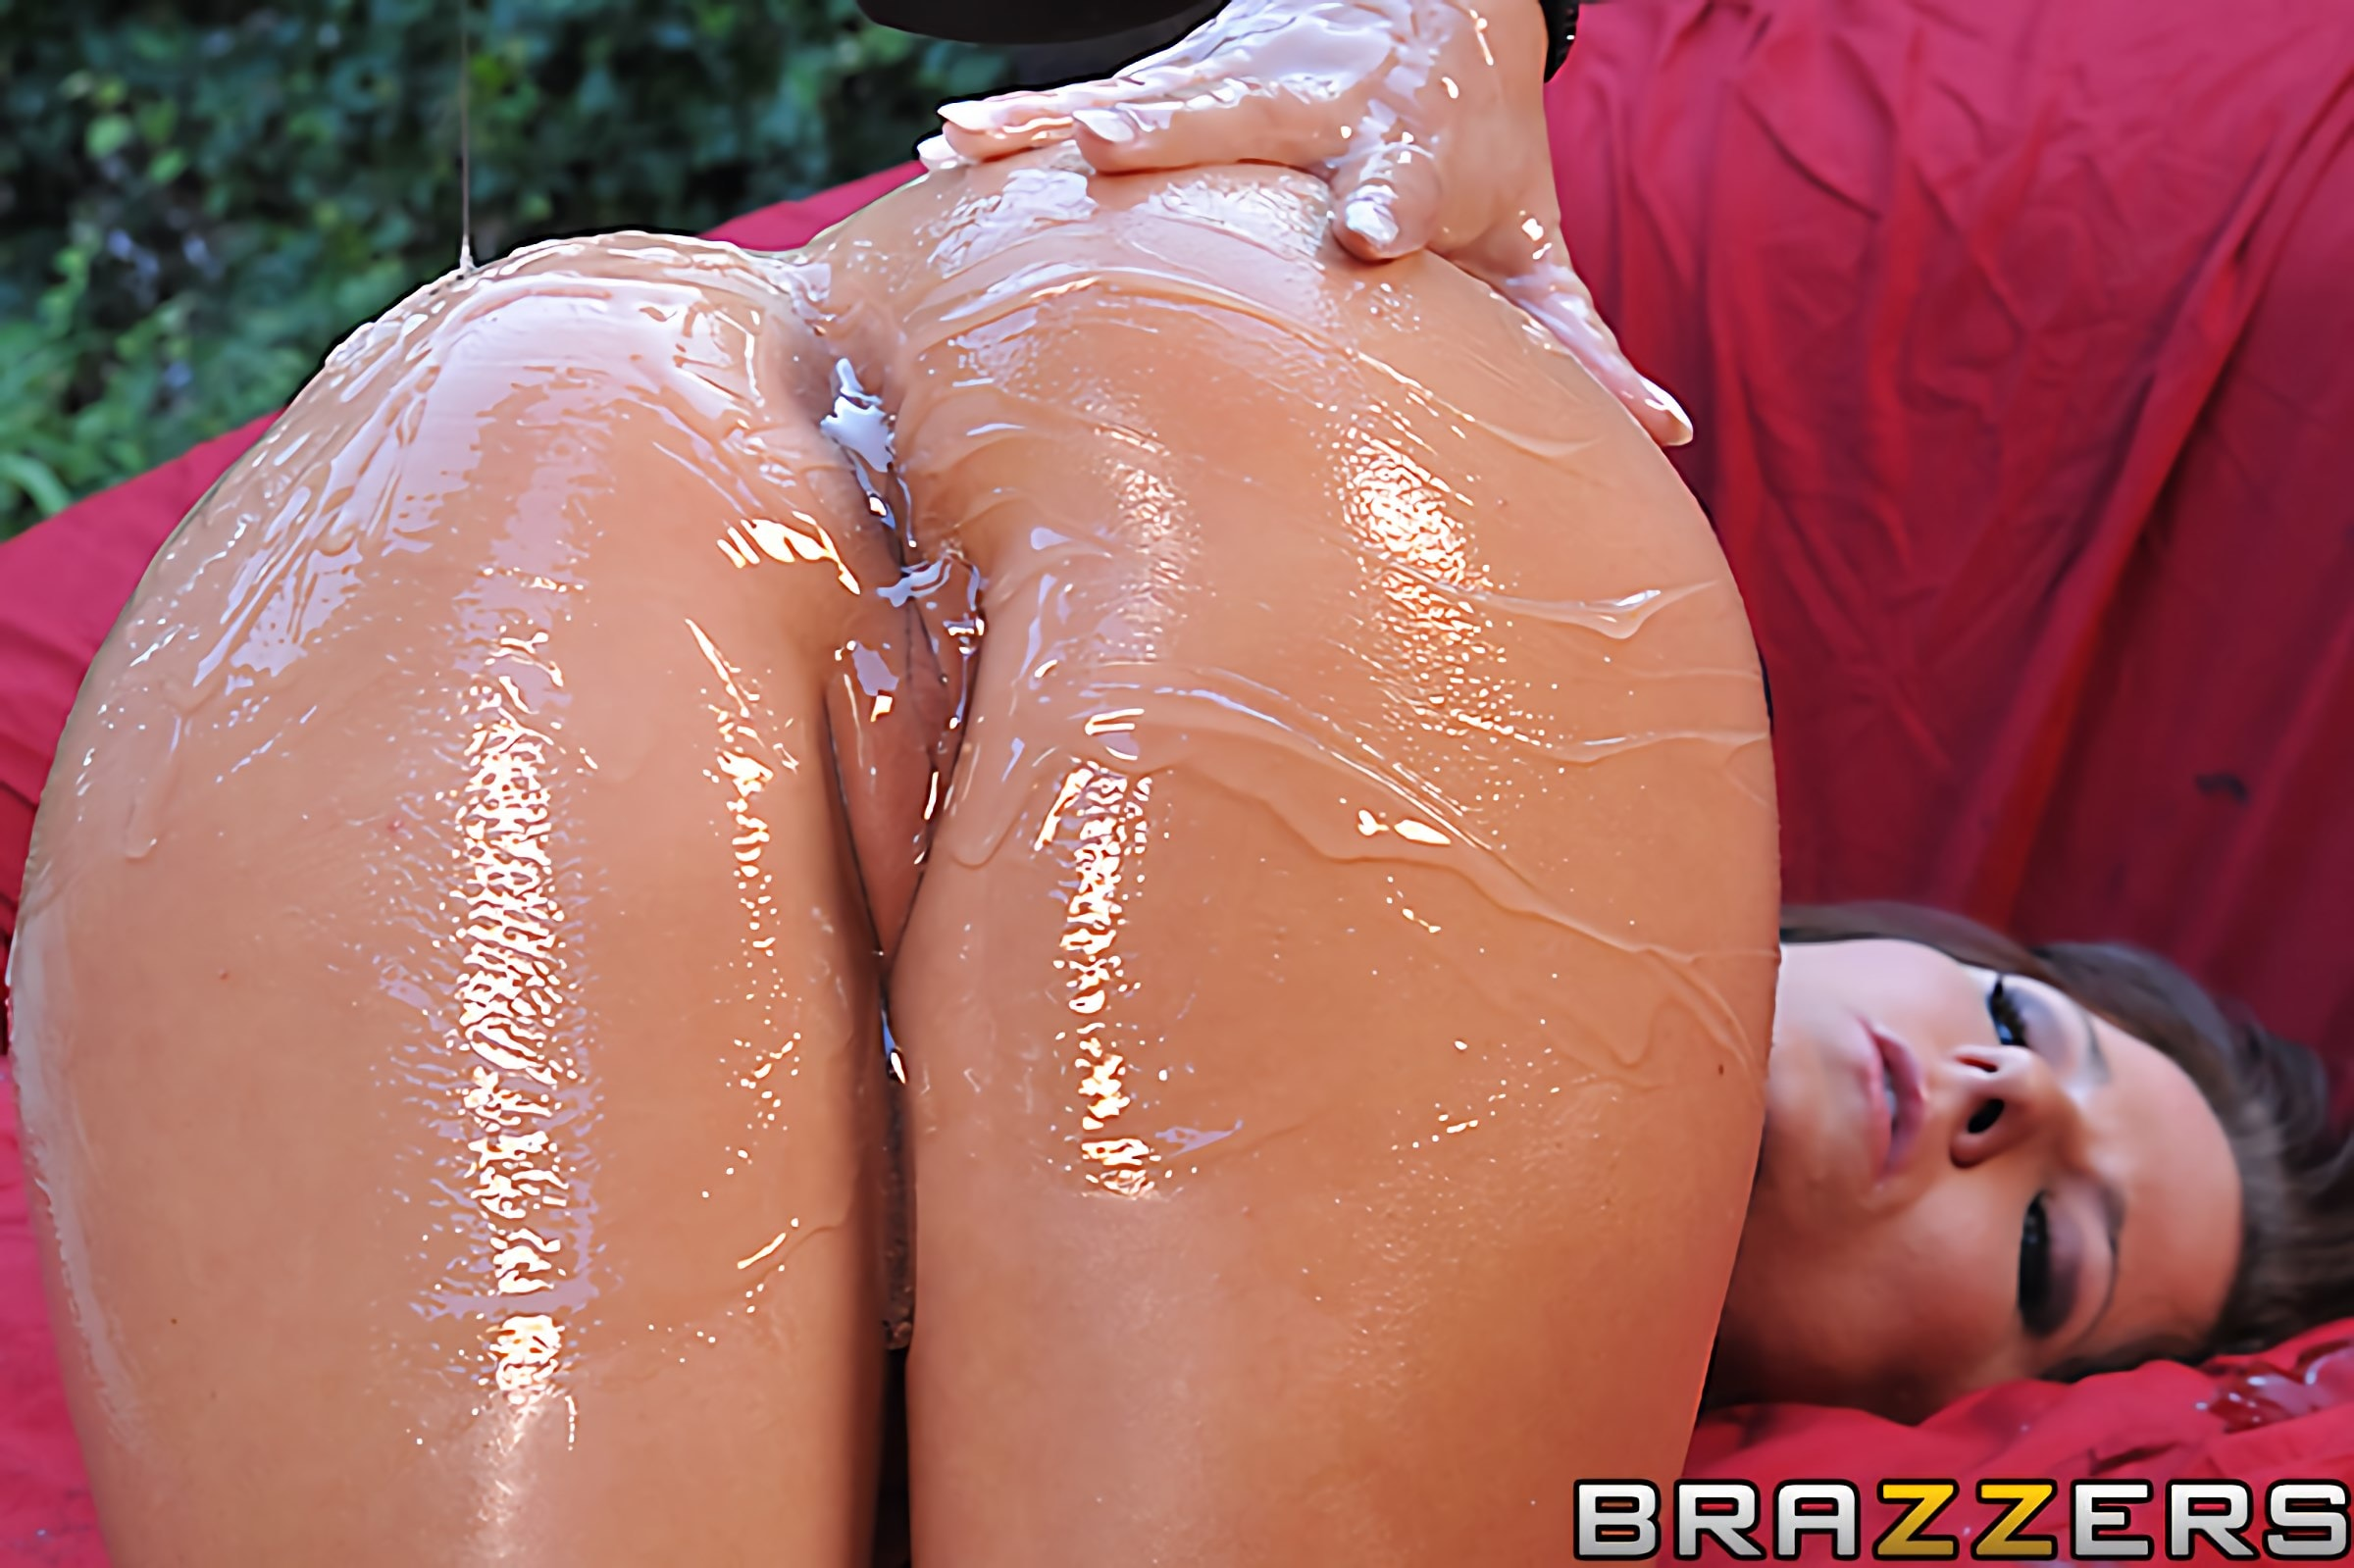 Brazzers 'Anal Lust' starring Casey Cumz (photo 6)